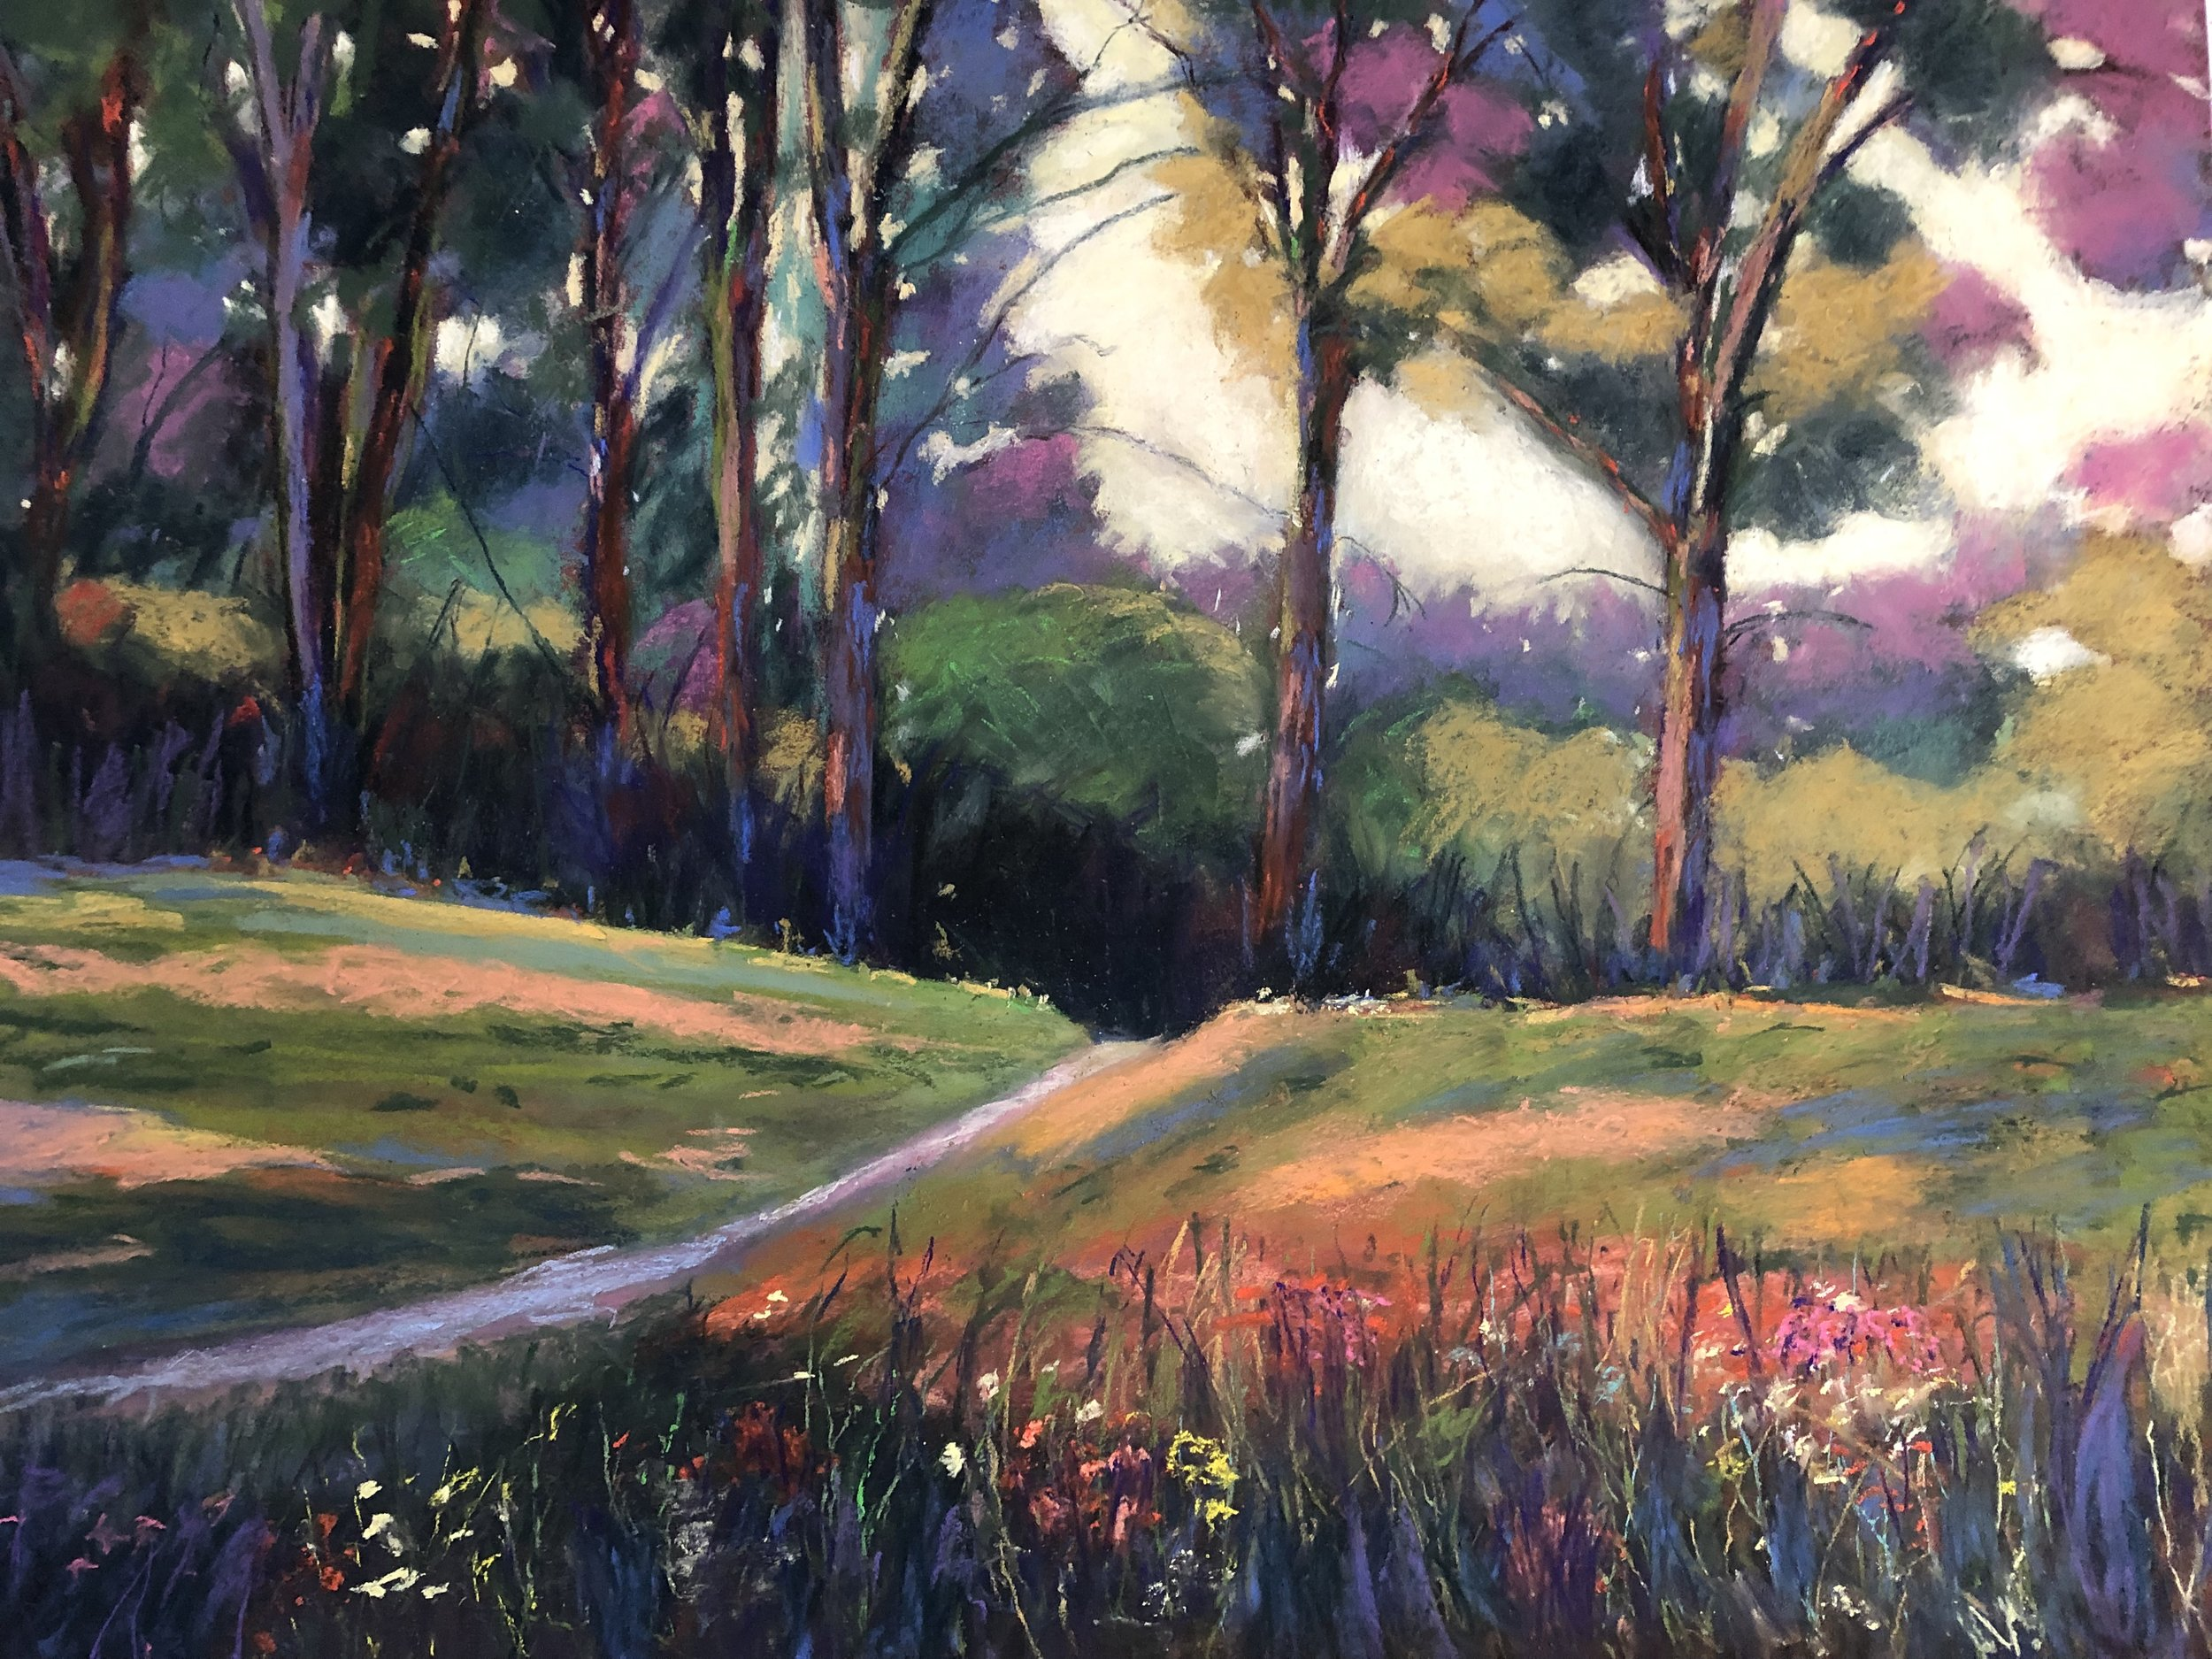 A walk in the Park - Medium/Materials used: Soft Pastels on Canson Mi-Teintes paper.Measurements (framed): 67cm x 81cmMeasurements (Unframed): 50cm x 65cm